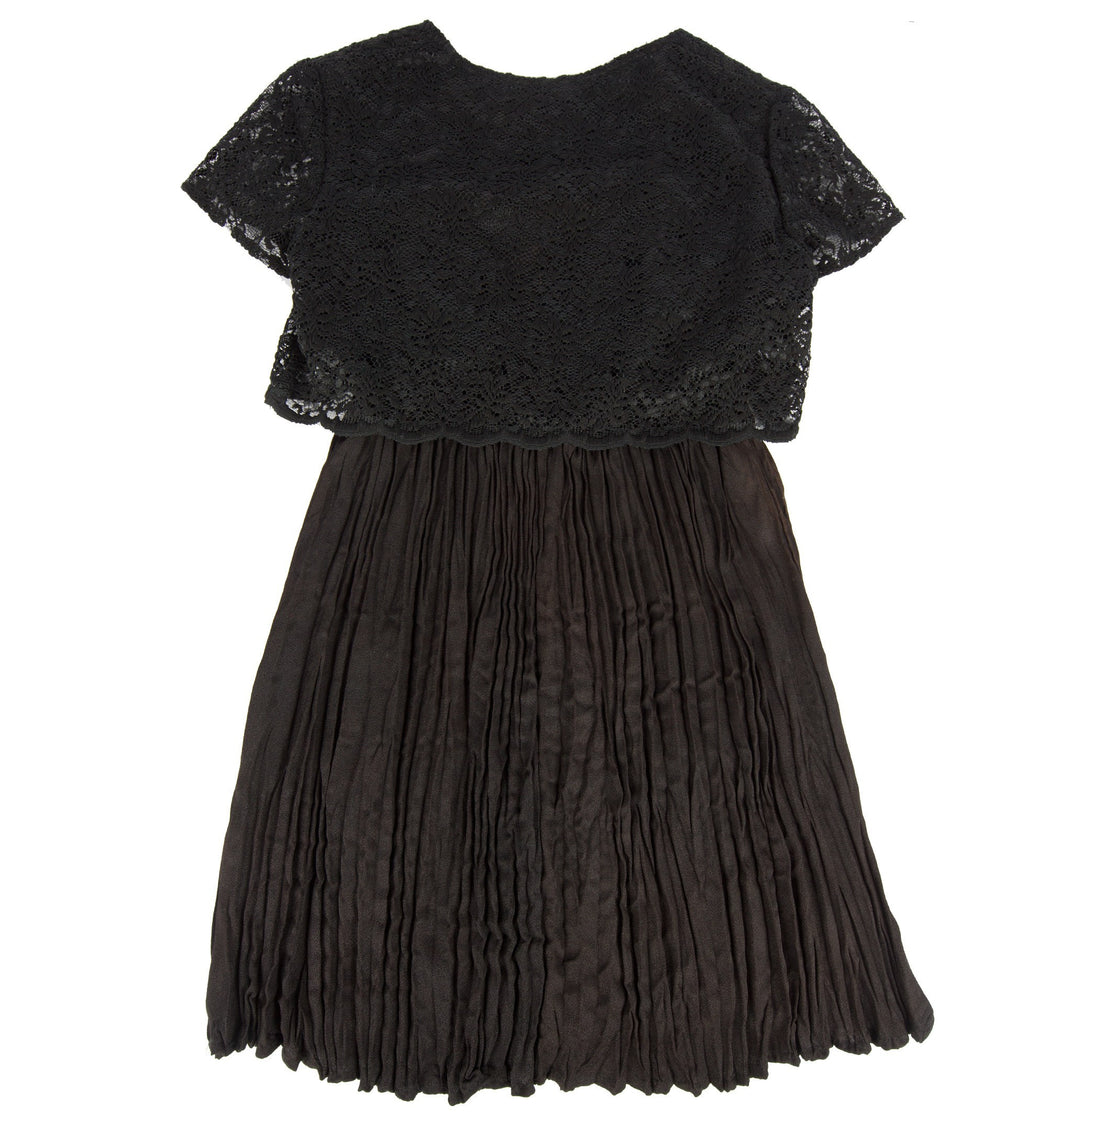 Vintage 80's Black Lace top short sleeve Dress - Vintage - Iron and Resin